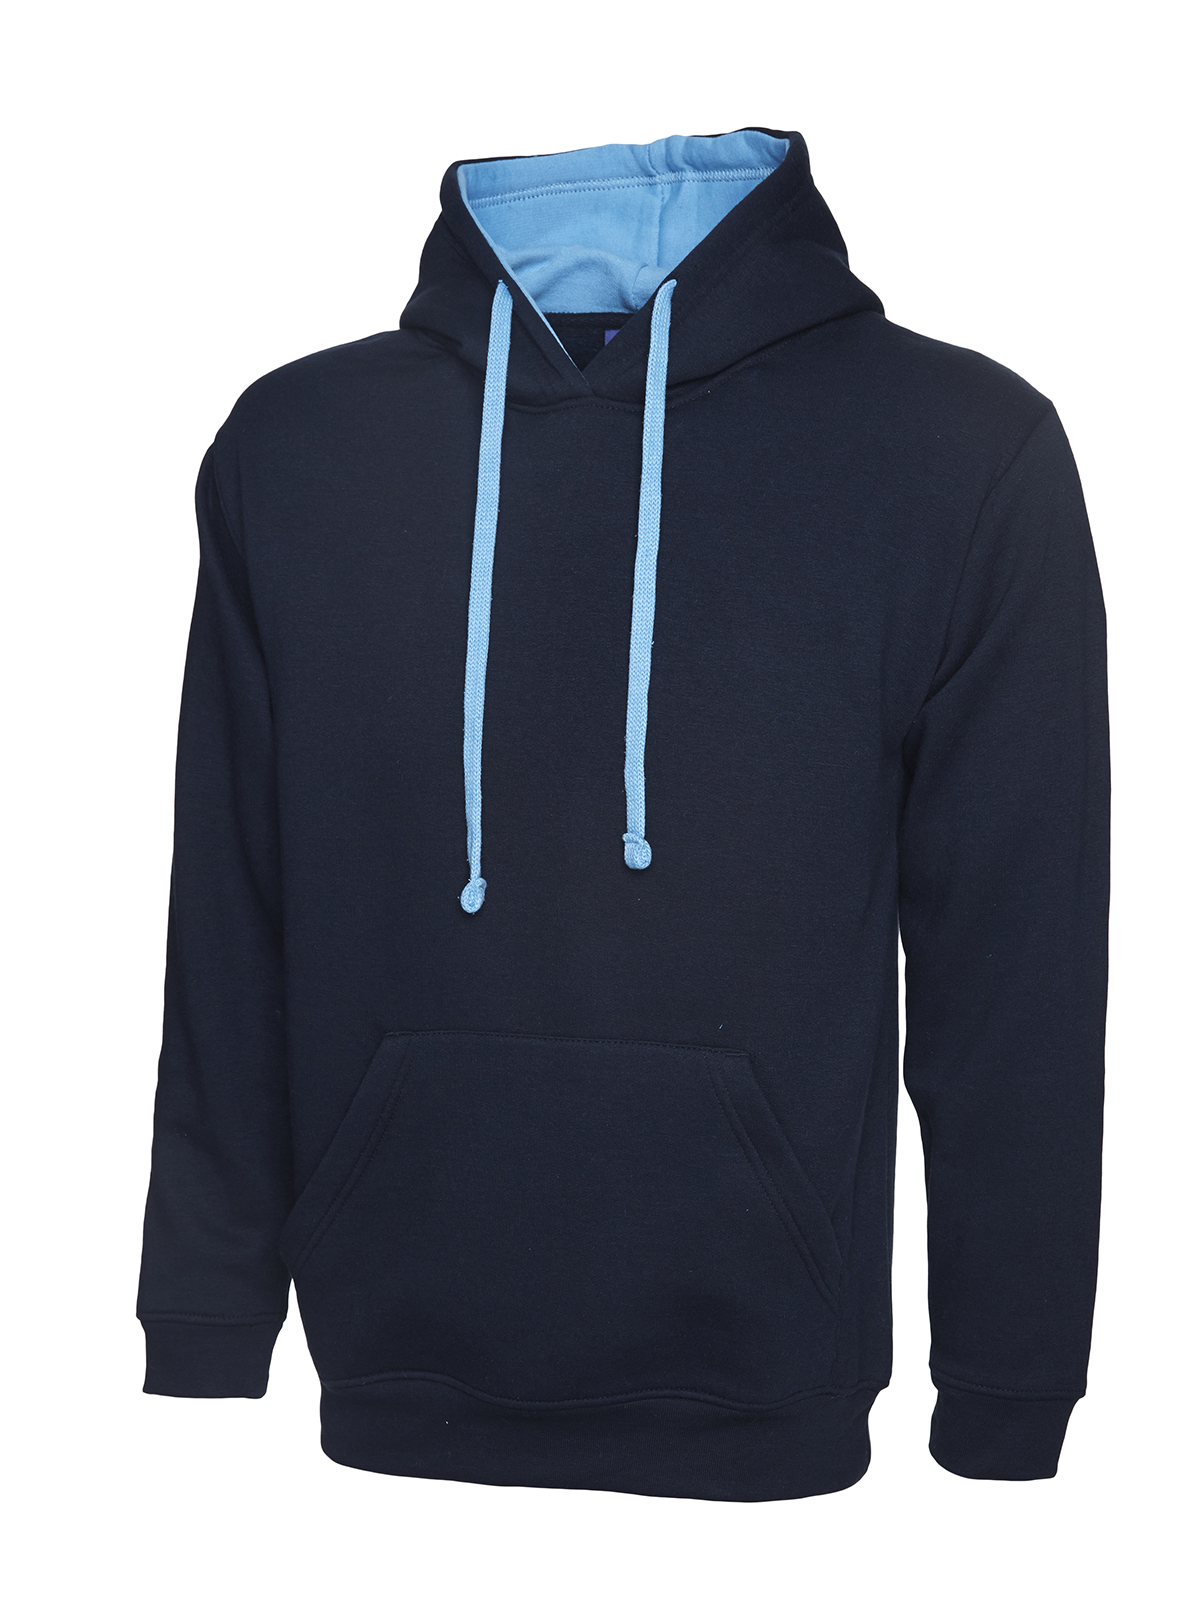 Uneek UC507 Contrast Hooded Sweatshirt B